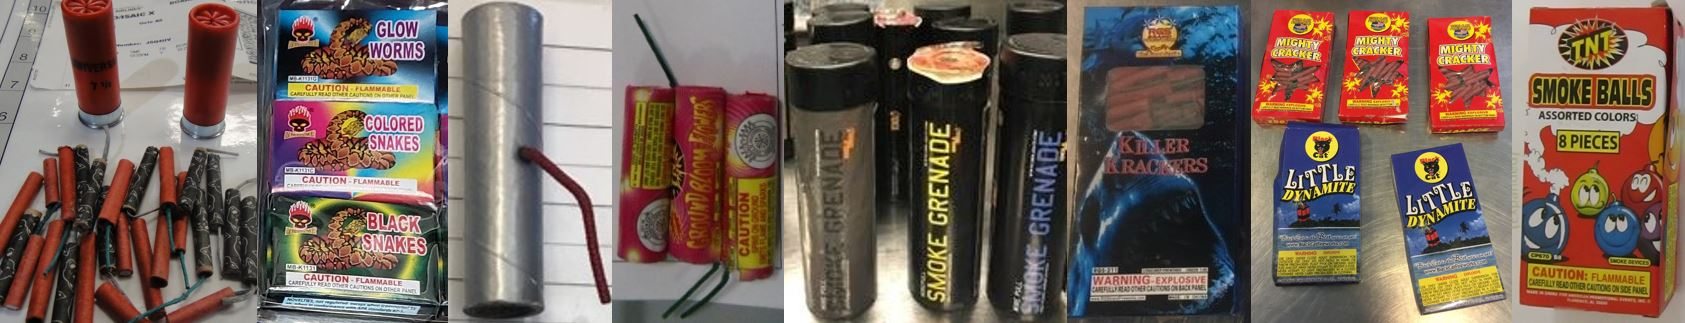 Fireworks are not allowed in either carry-on or checked bags. The fireworks pictured here are just some of the fireworks discovered recently. These were discovered in carry-on and checked bags at ABQ, BNA, BWI, CID, JFK, LAS, OWB, PIT and RIC.